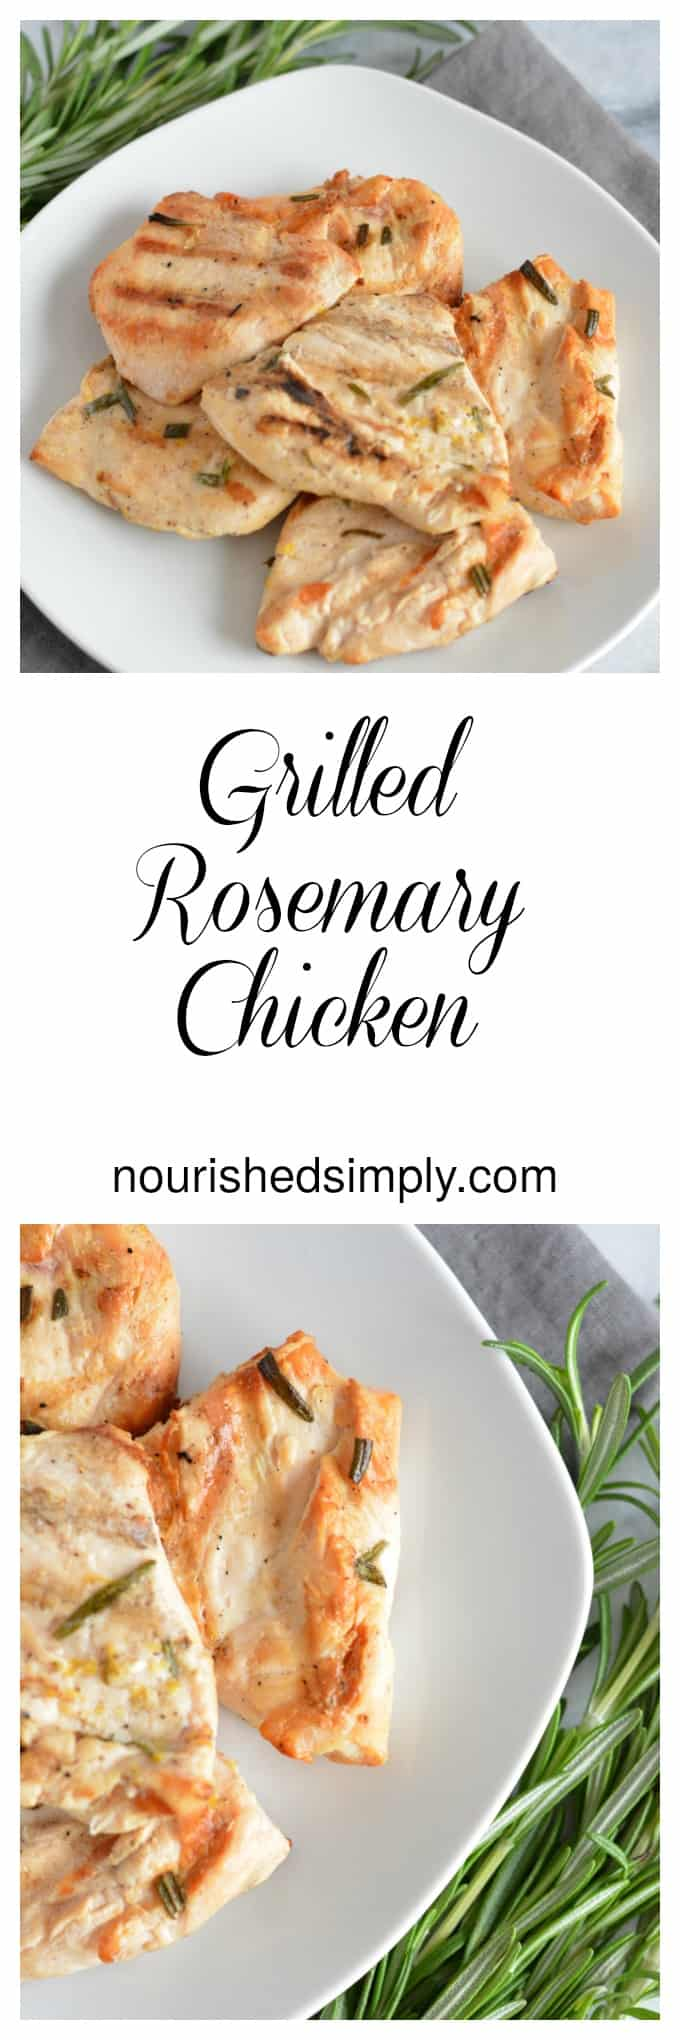 Grilled Rosemary Chicken is marinated in an easy to prepare marinade and grilled to be tender and juicy.